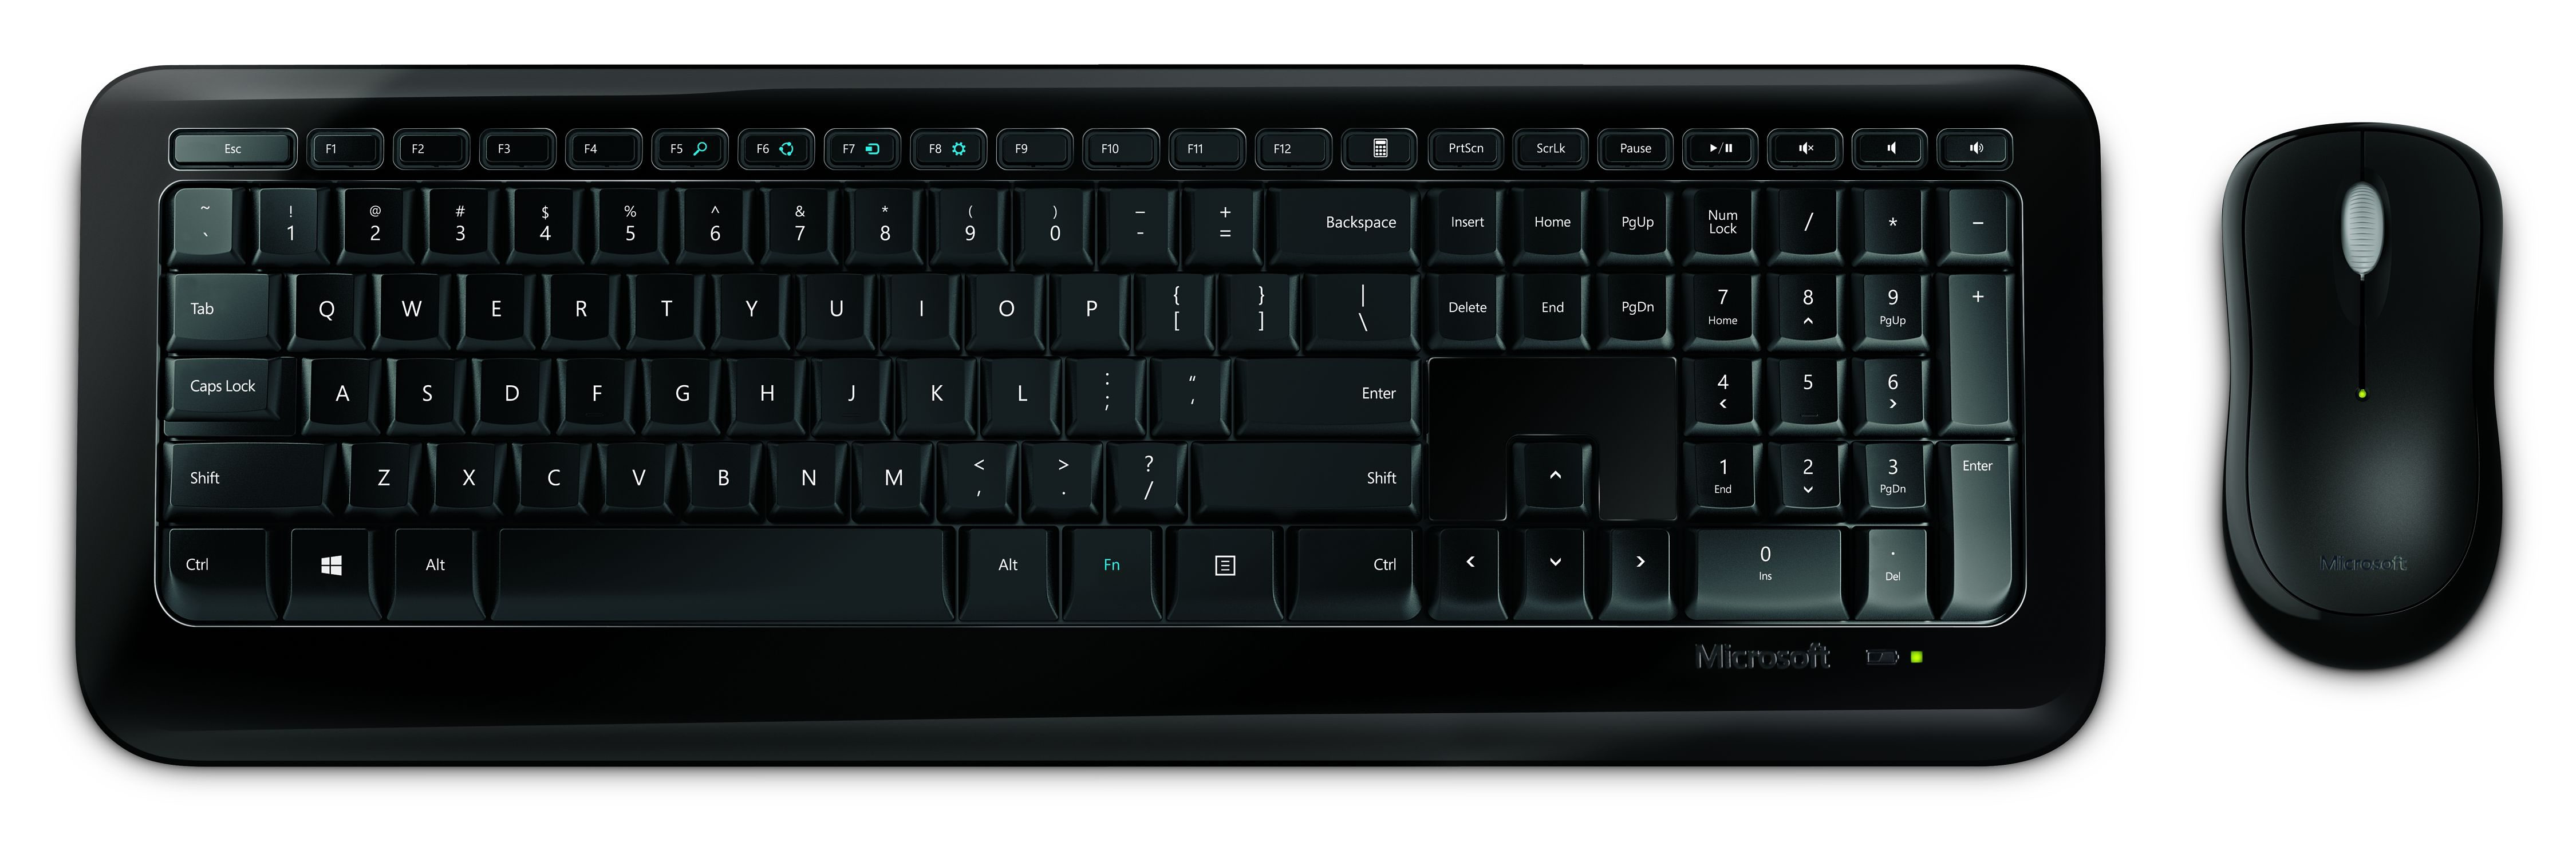 Microsoft Tastatur und Maus »Wireless Desktop 850 «